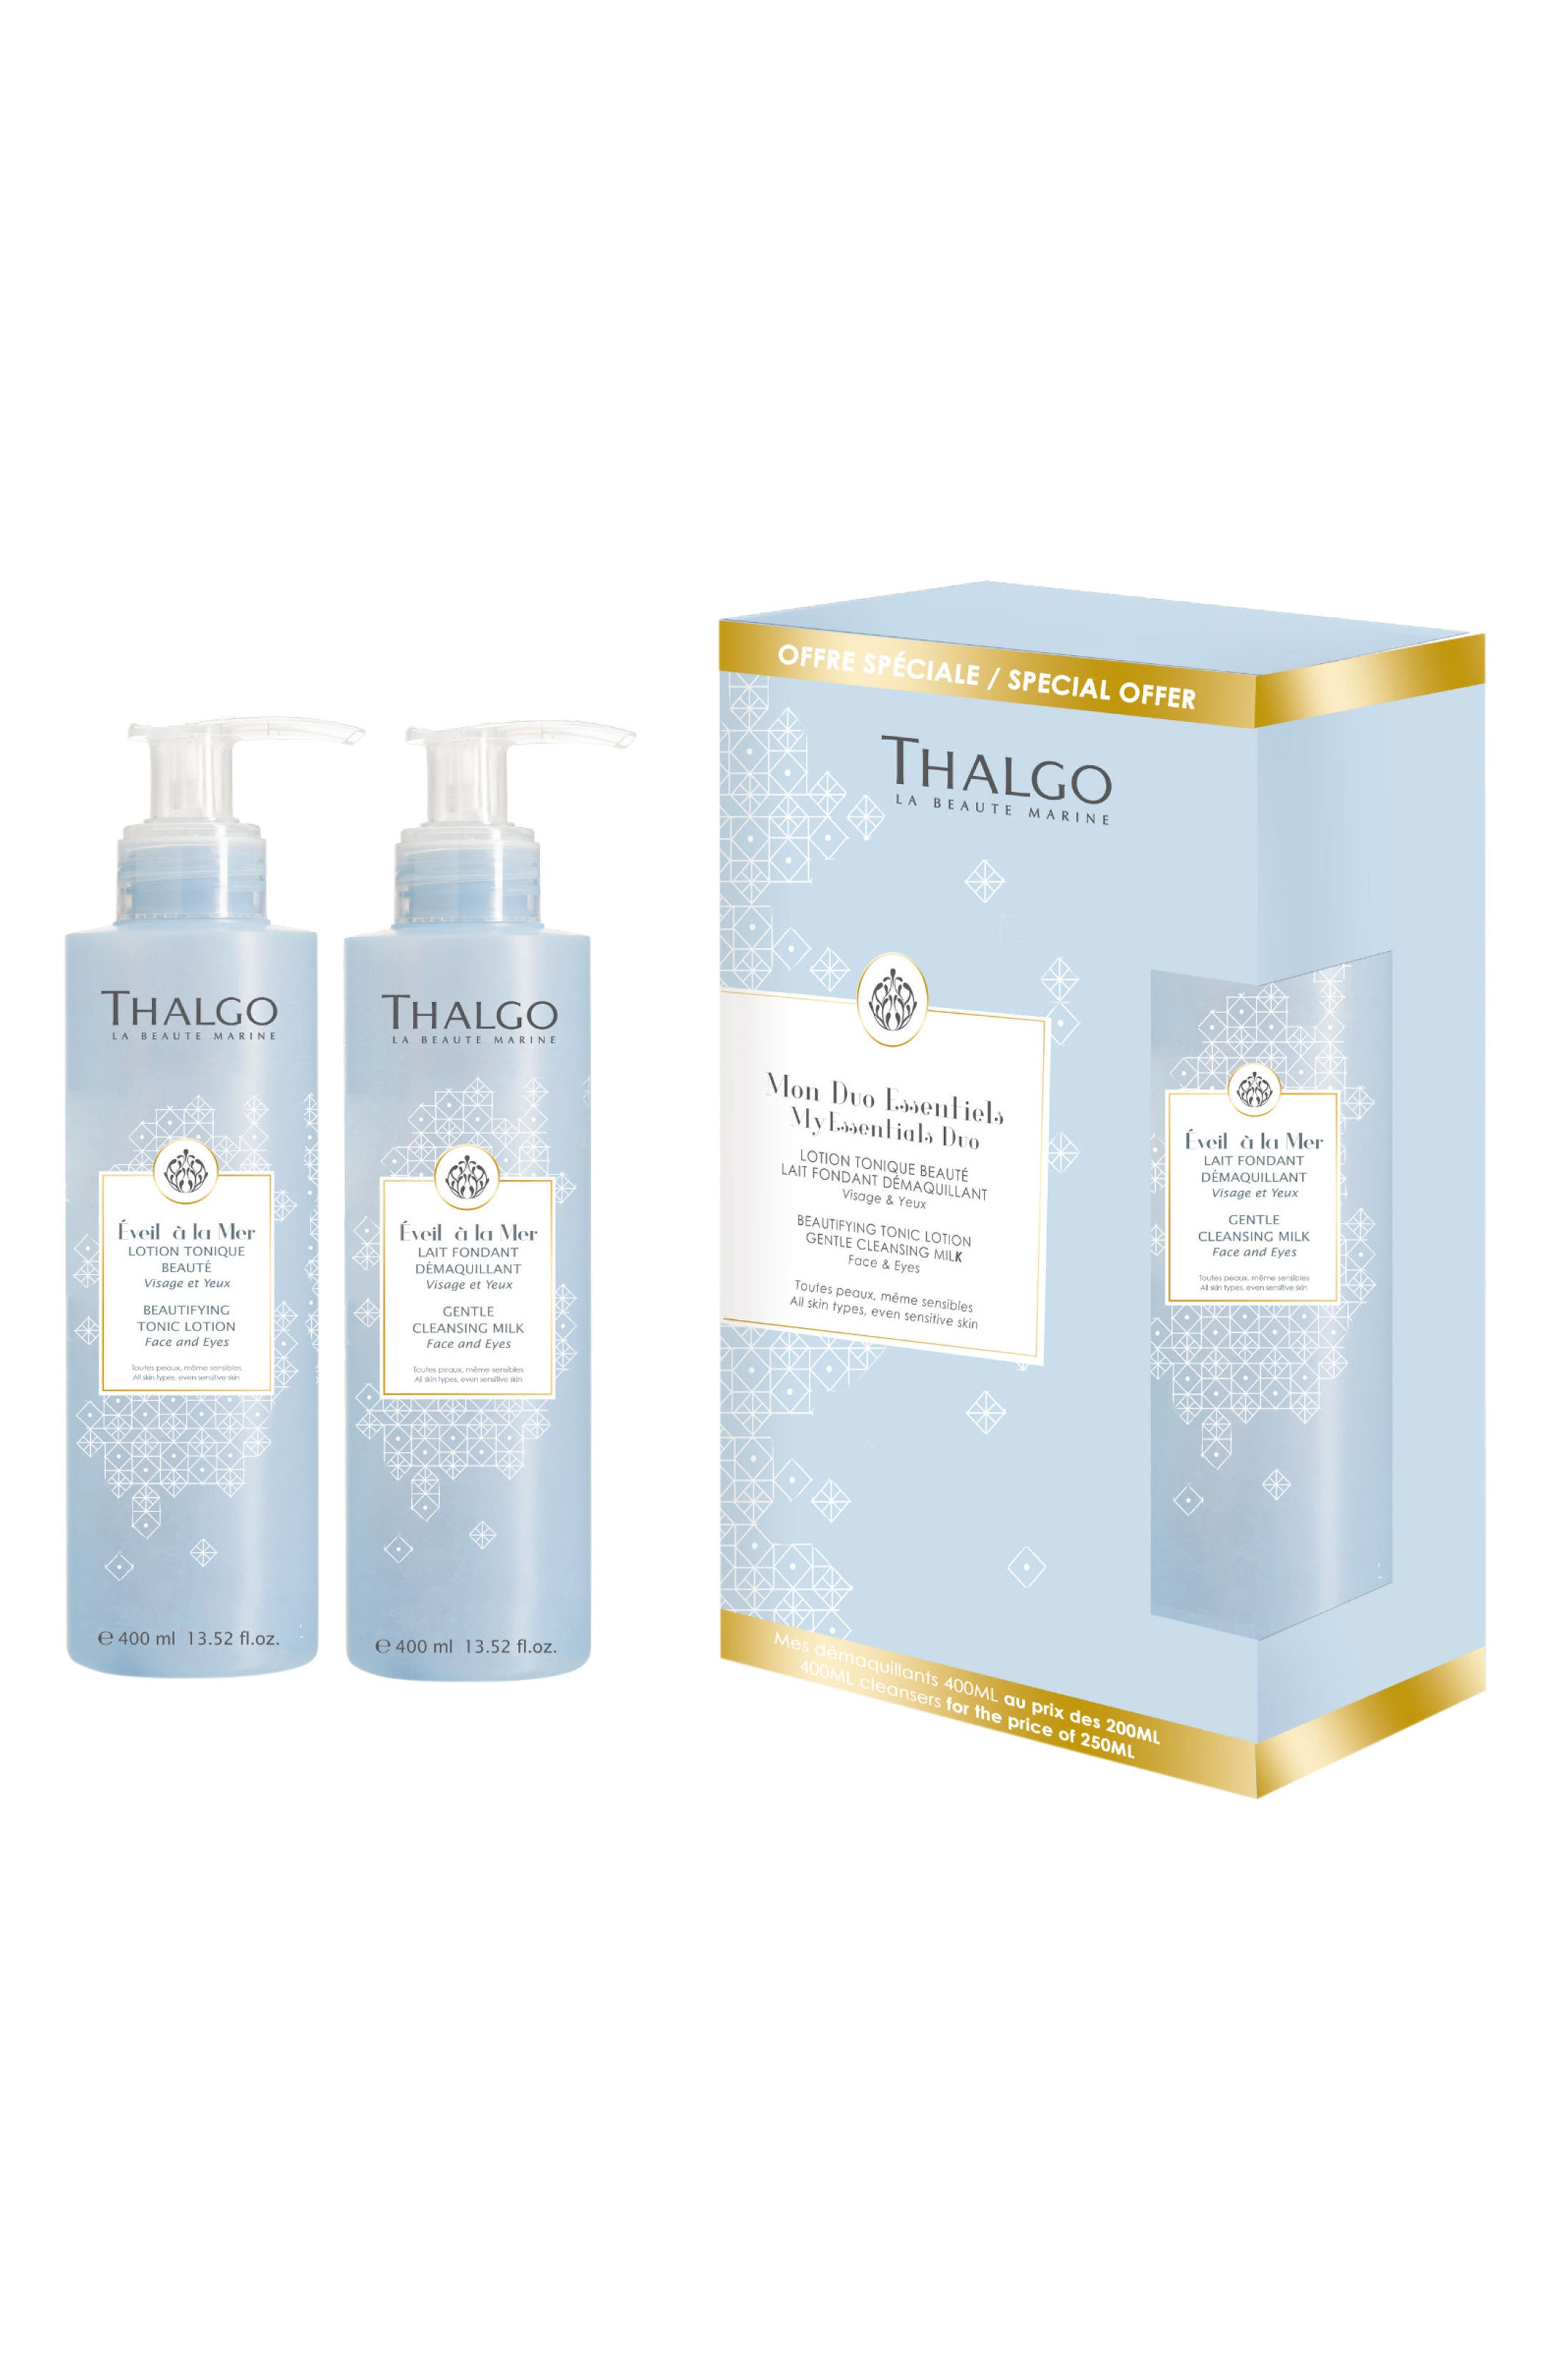 Thalgo Cleansing Duo ($120 Value)